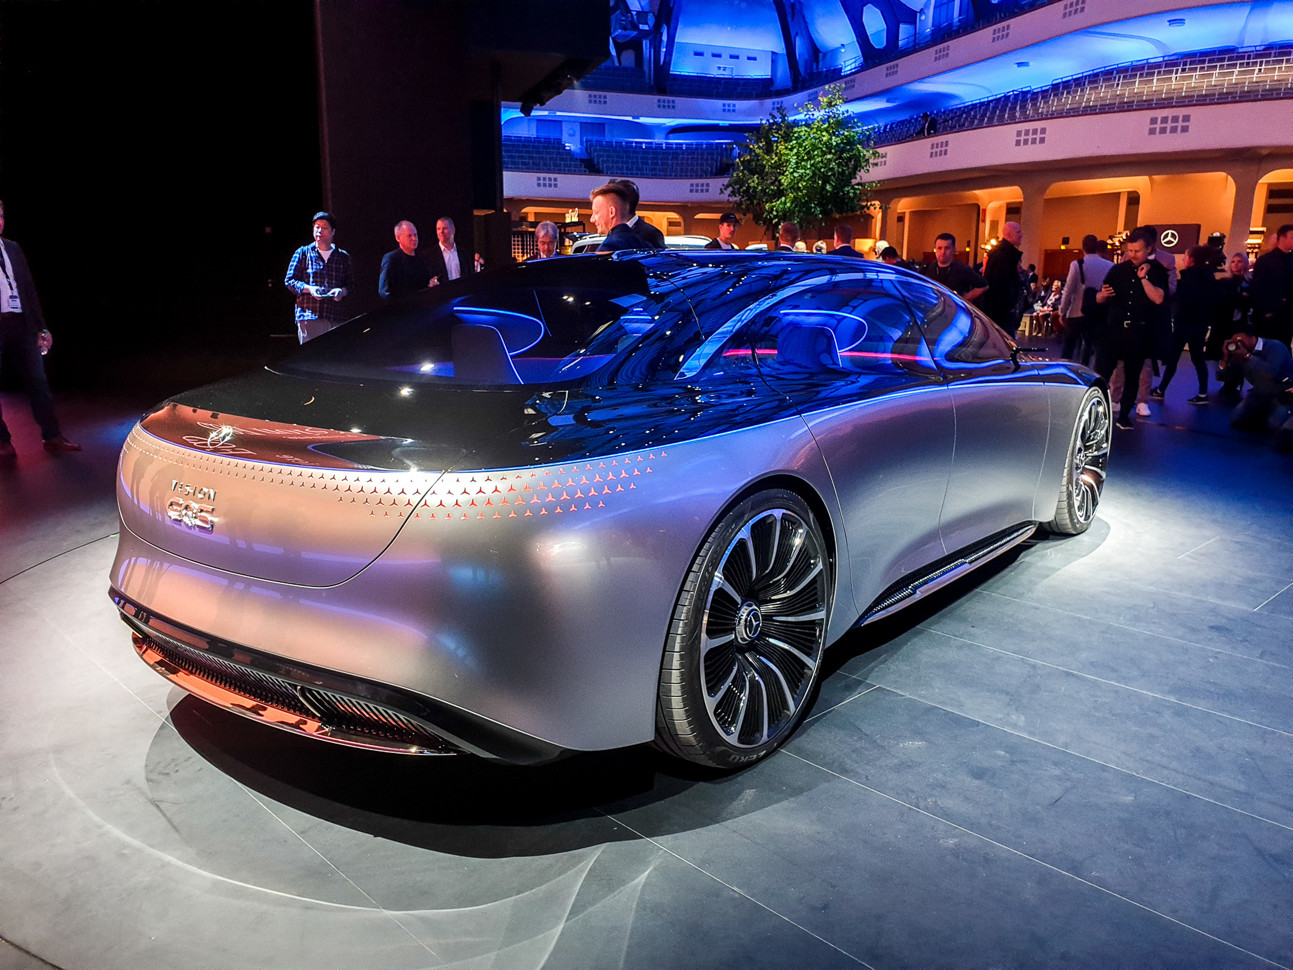 Mercedes-Benz has unveiled the Vision EQS Concept, a prototype version of its upcoming executive car line.